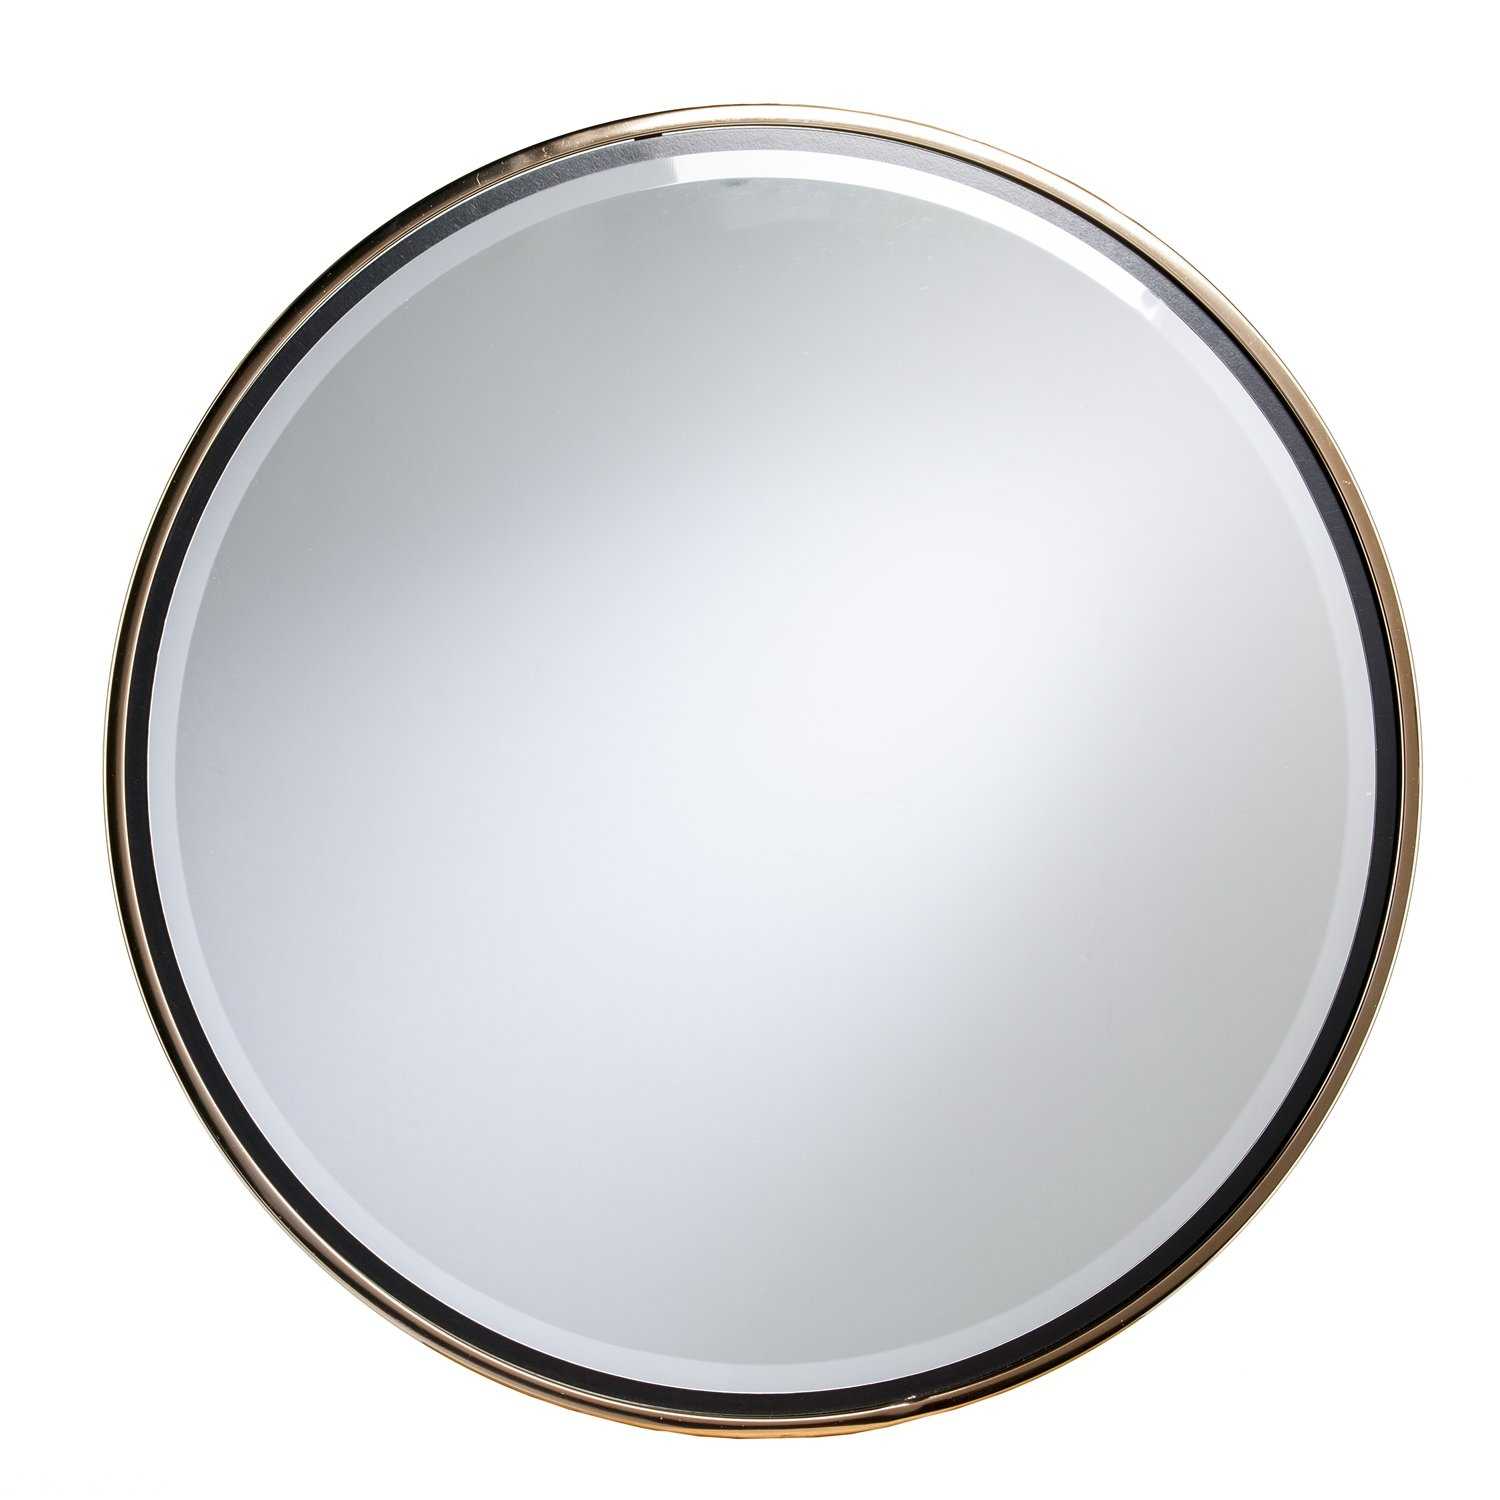 Willa Arlo Interiors Contemporary Round Wall Mirror Reviews In Contemporary Wall Mirror (Image 15 of 15)